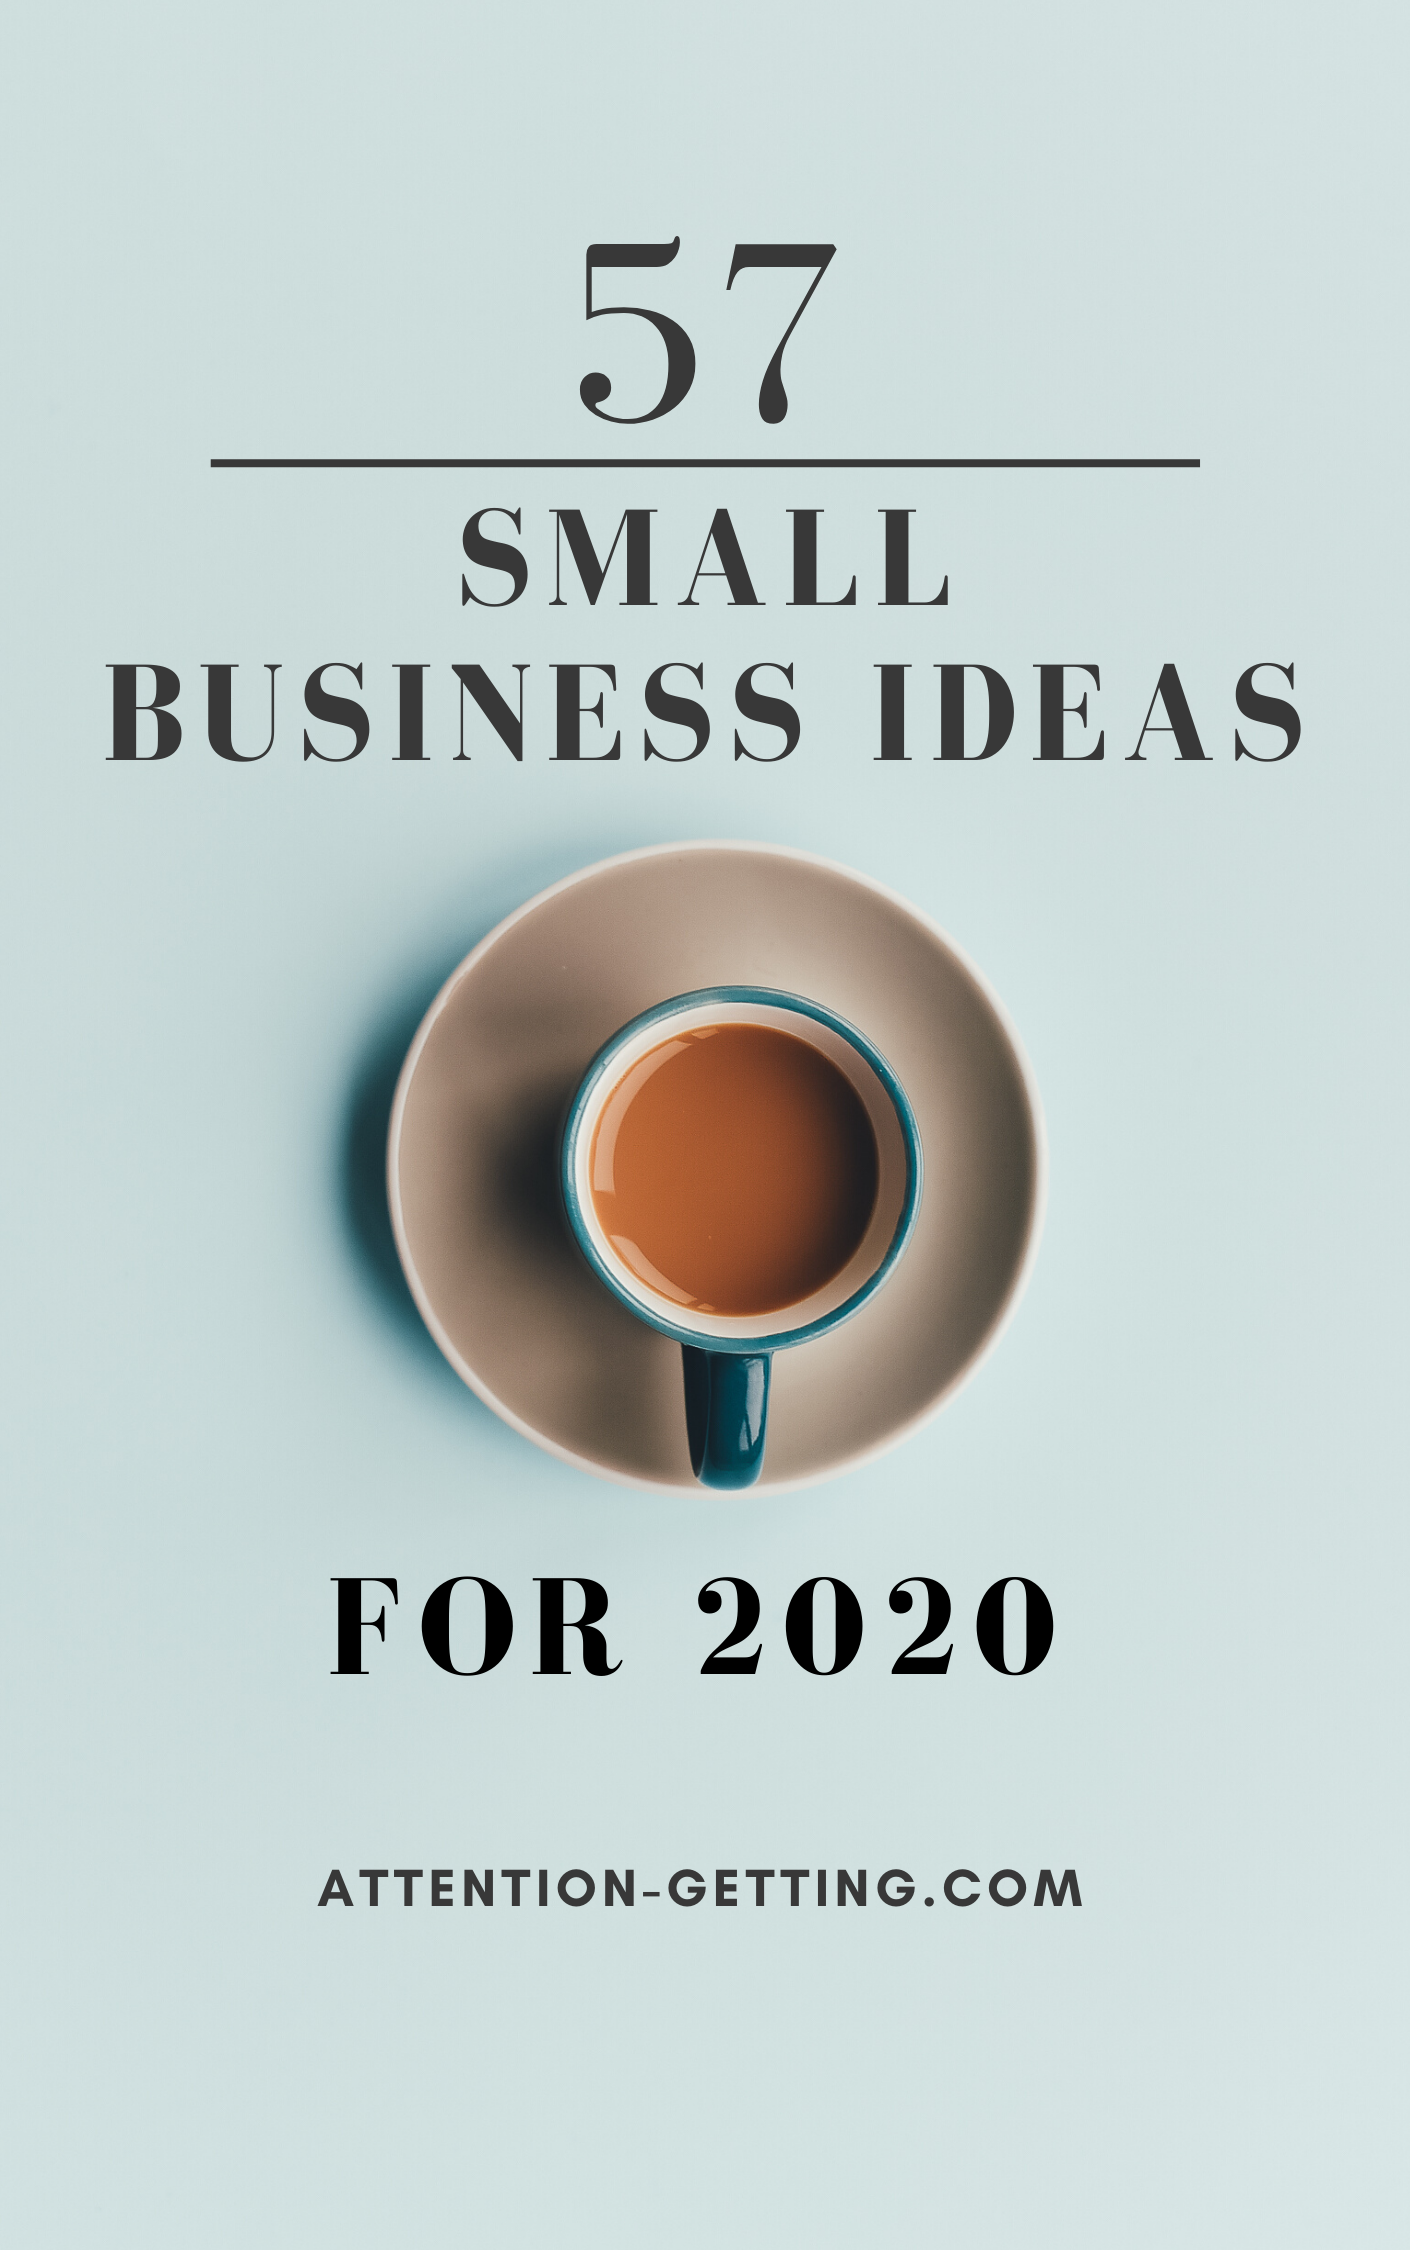 57 Creative Small Business Ideas Attention Getting Marketing Best Small Business Ideas Own Business Ideas Creative Small Business